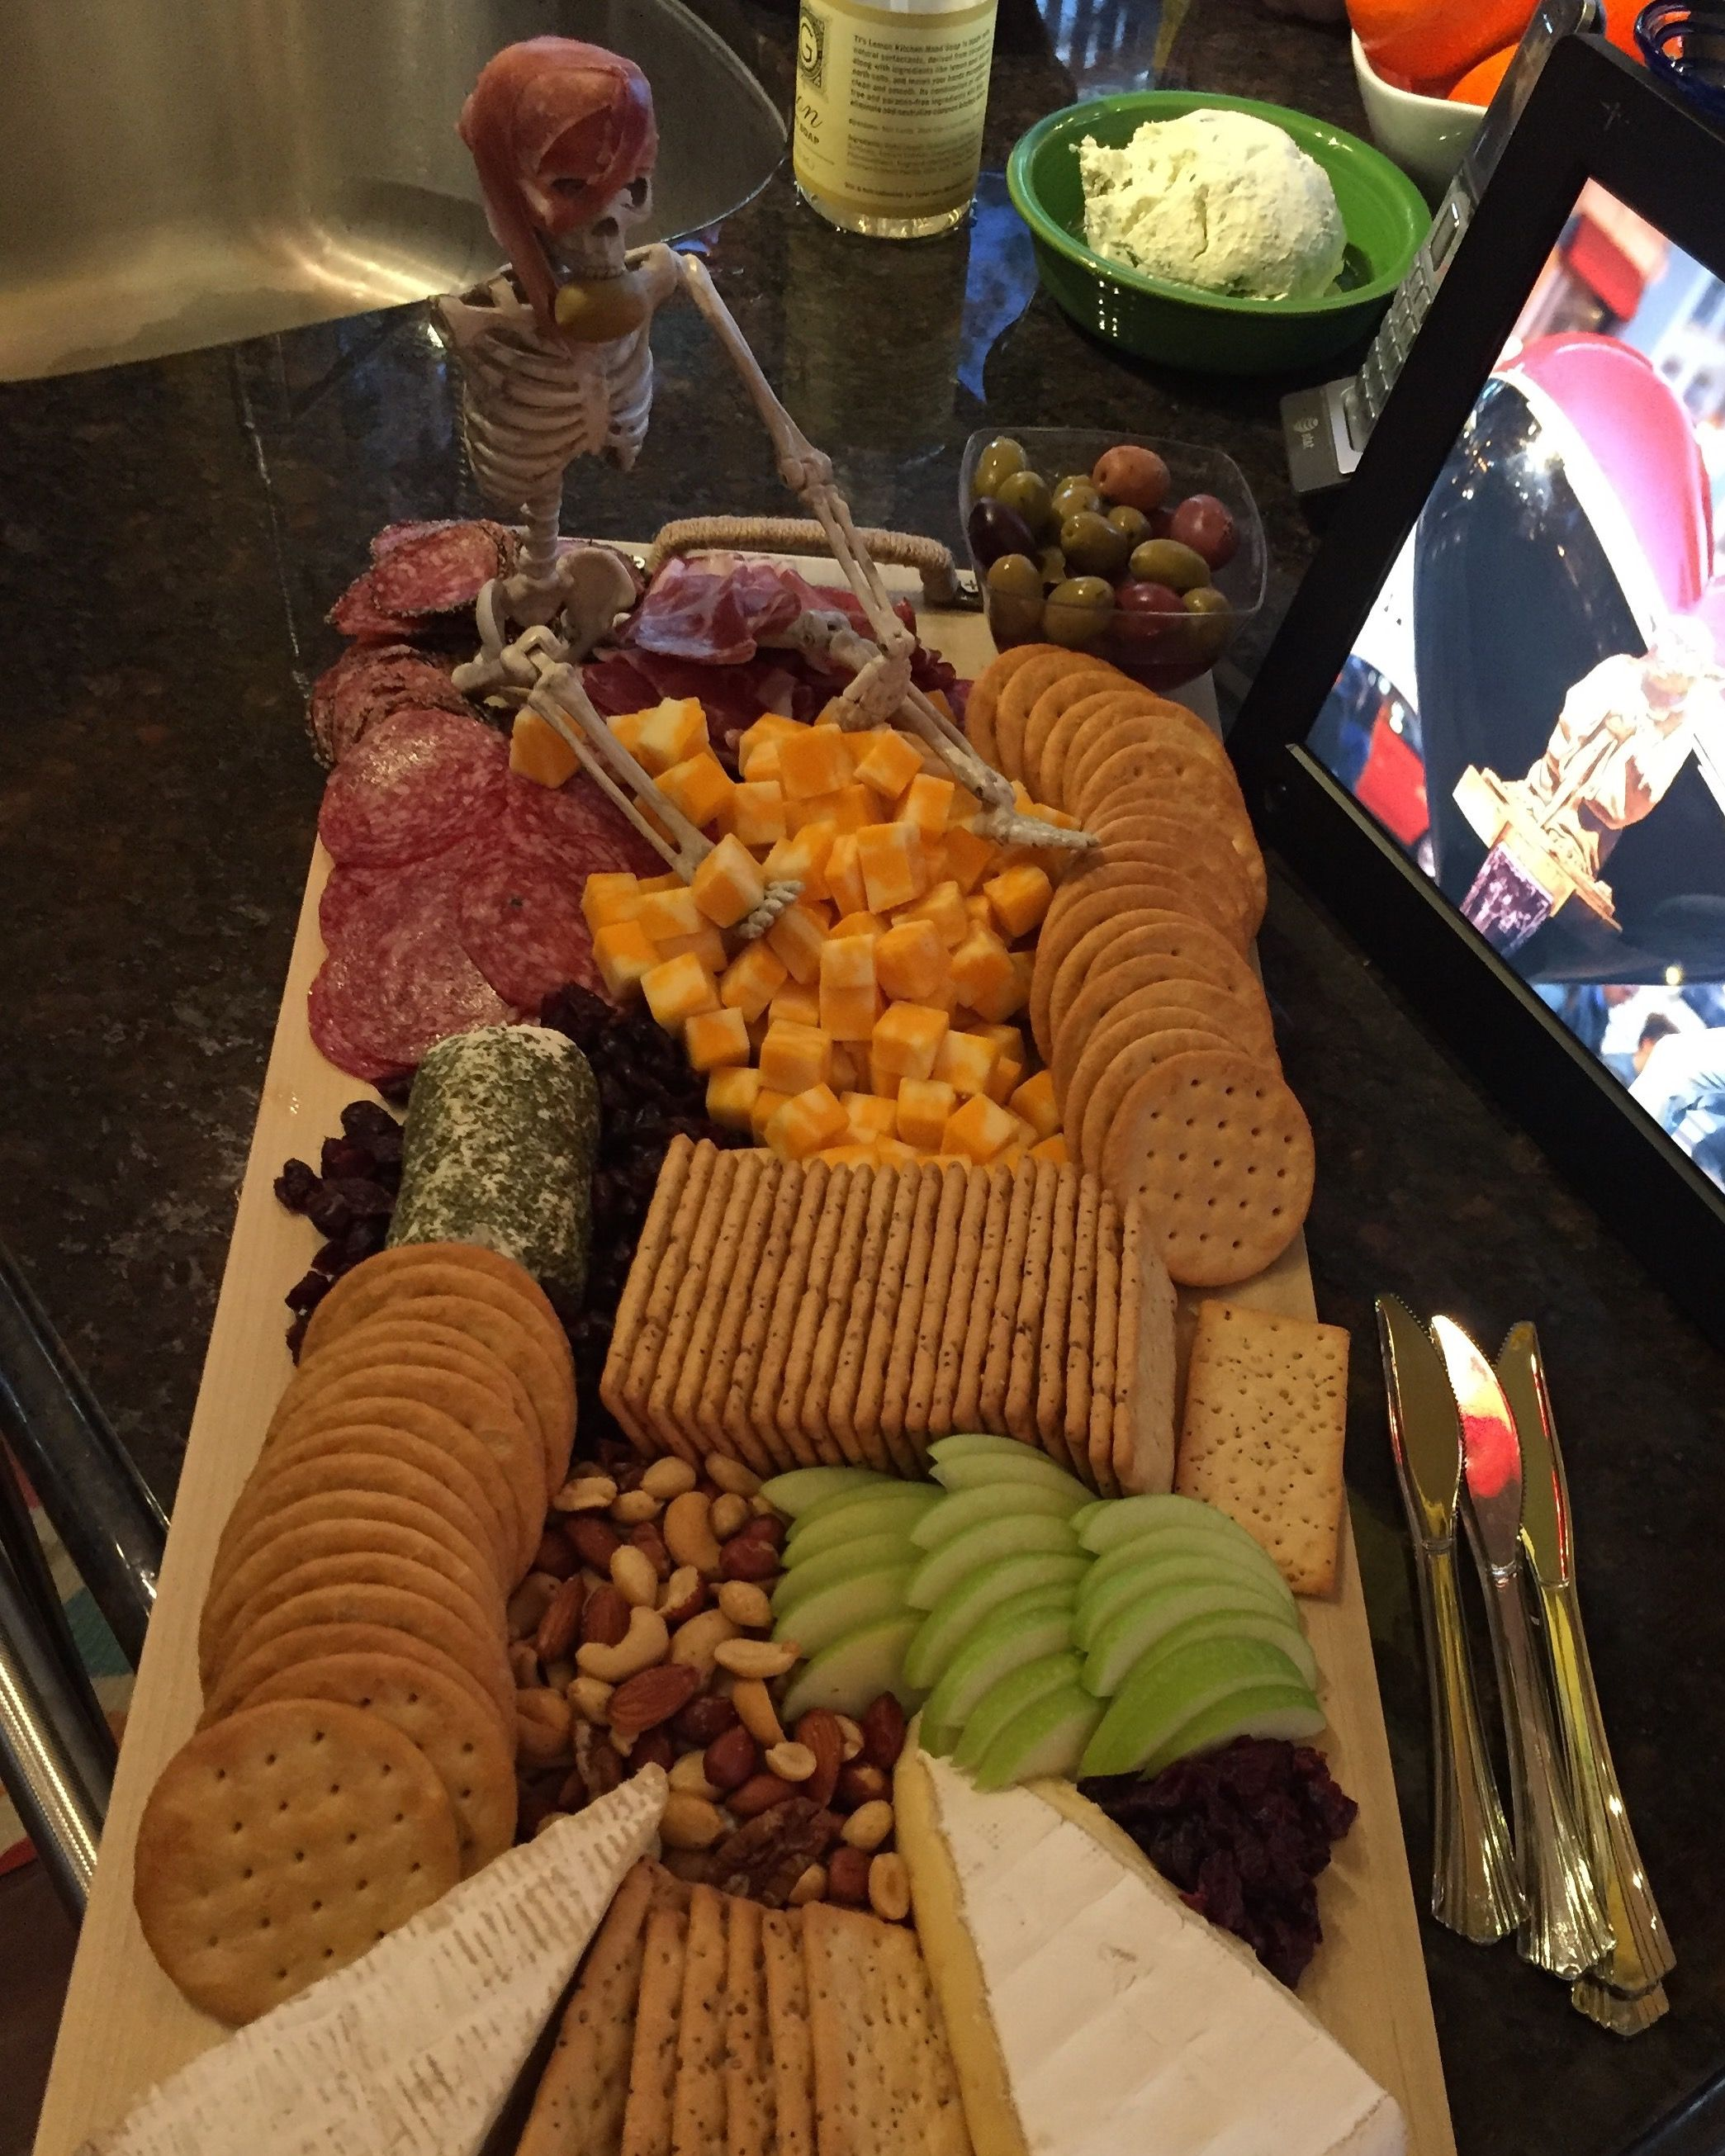 My Halloween Meat & Cheese platter!